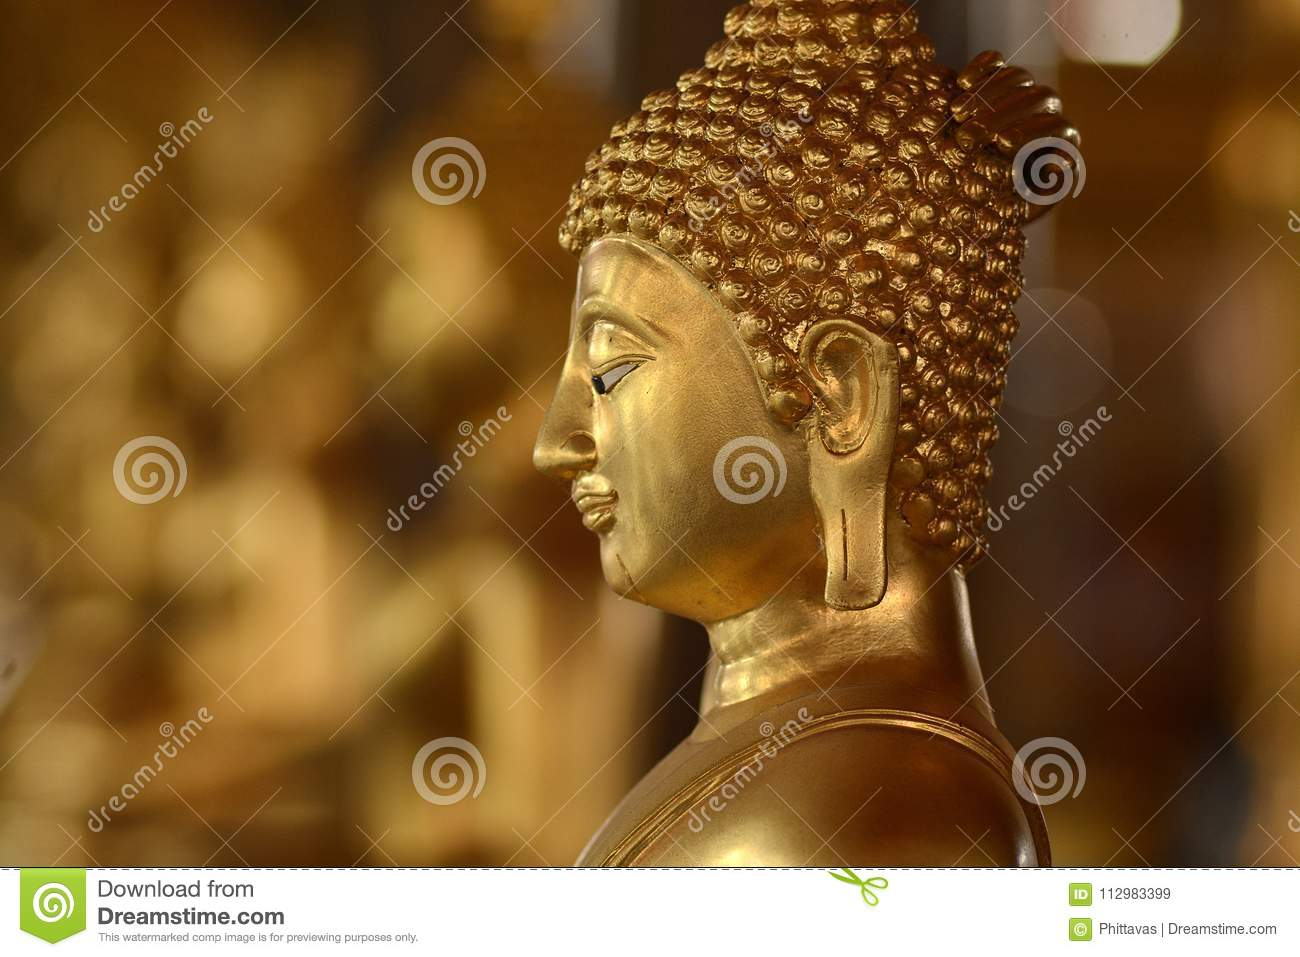 Golden of buddish state in the art style ,Wat Krathum Suea Pla t